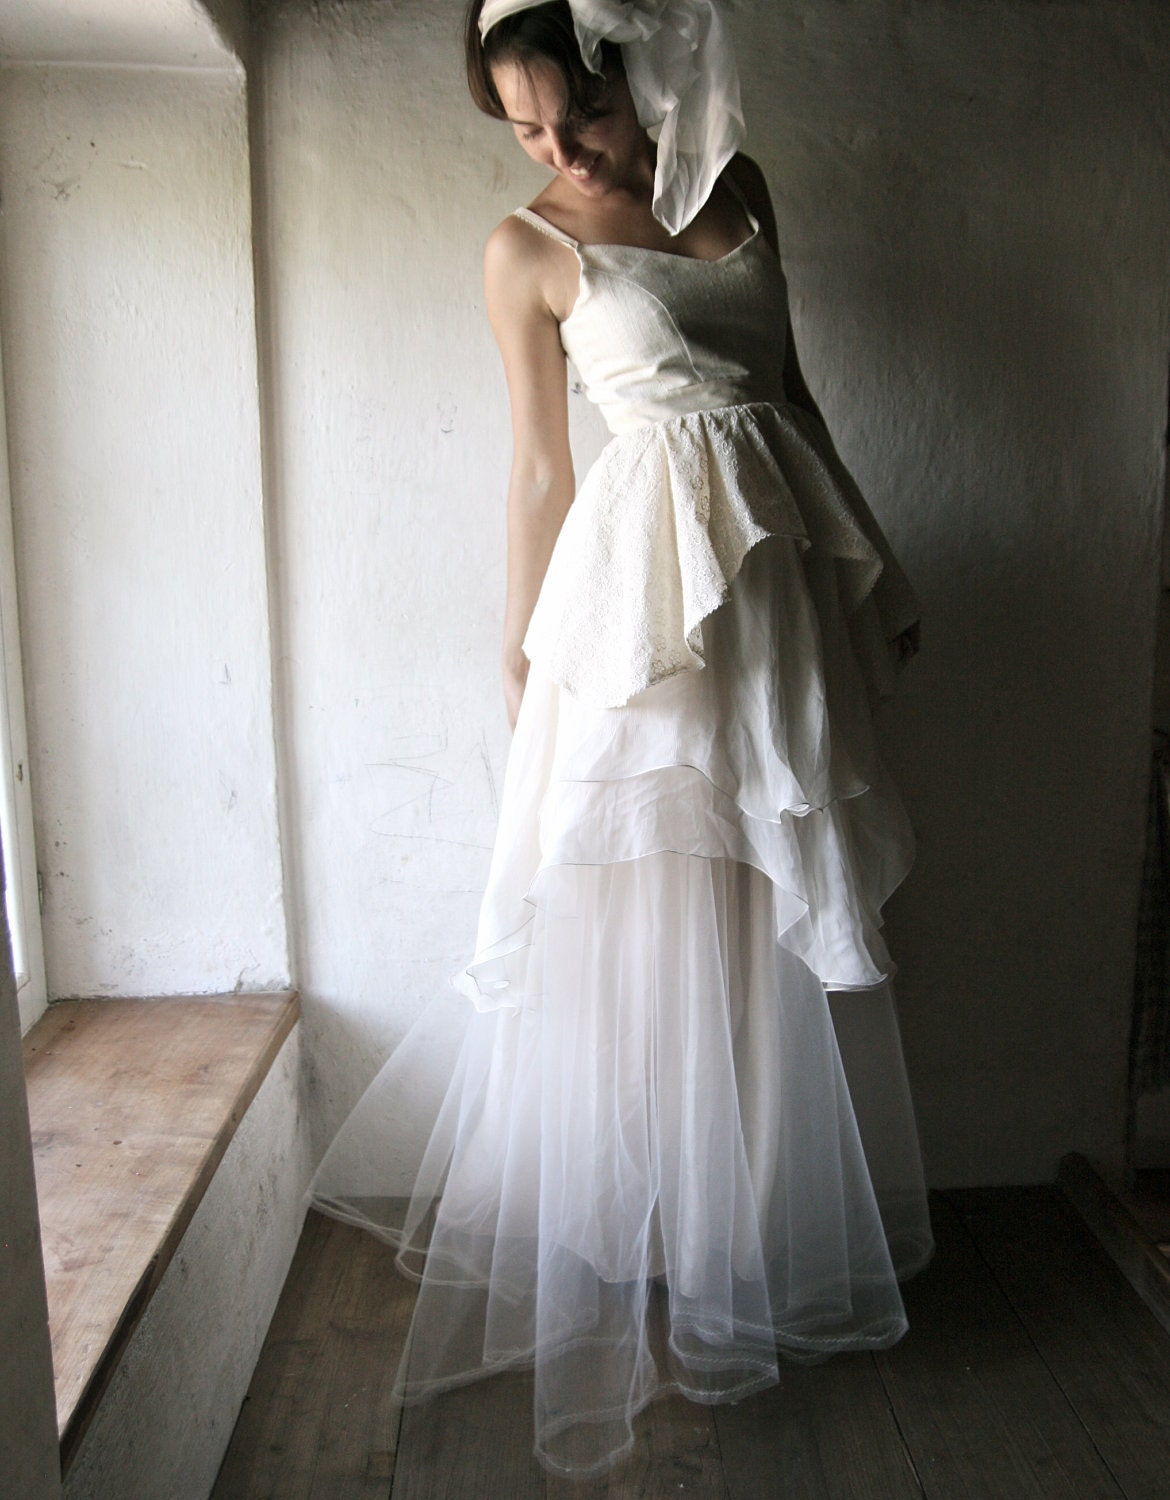 Wedding Dress - Bridal Gown ivory silk chiffon floor length couture handmade gown one of a kind - larimeloom